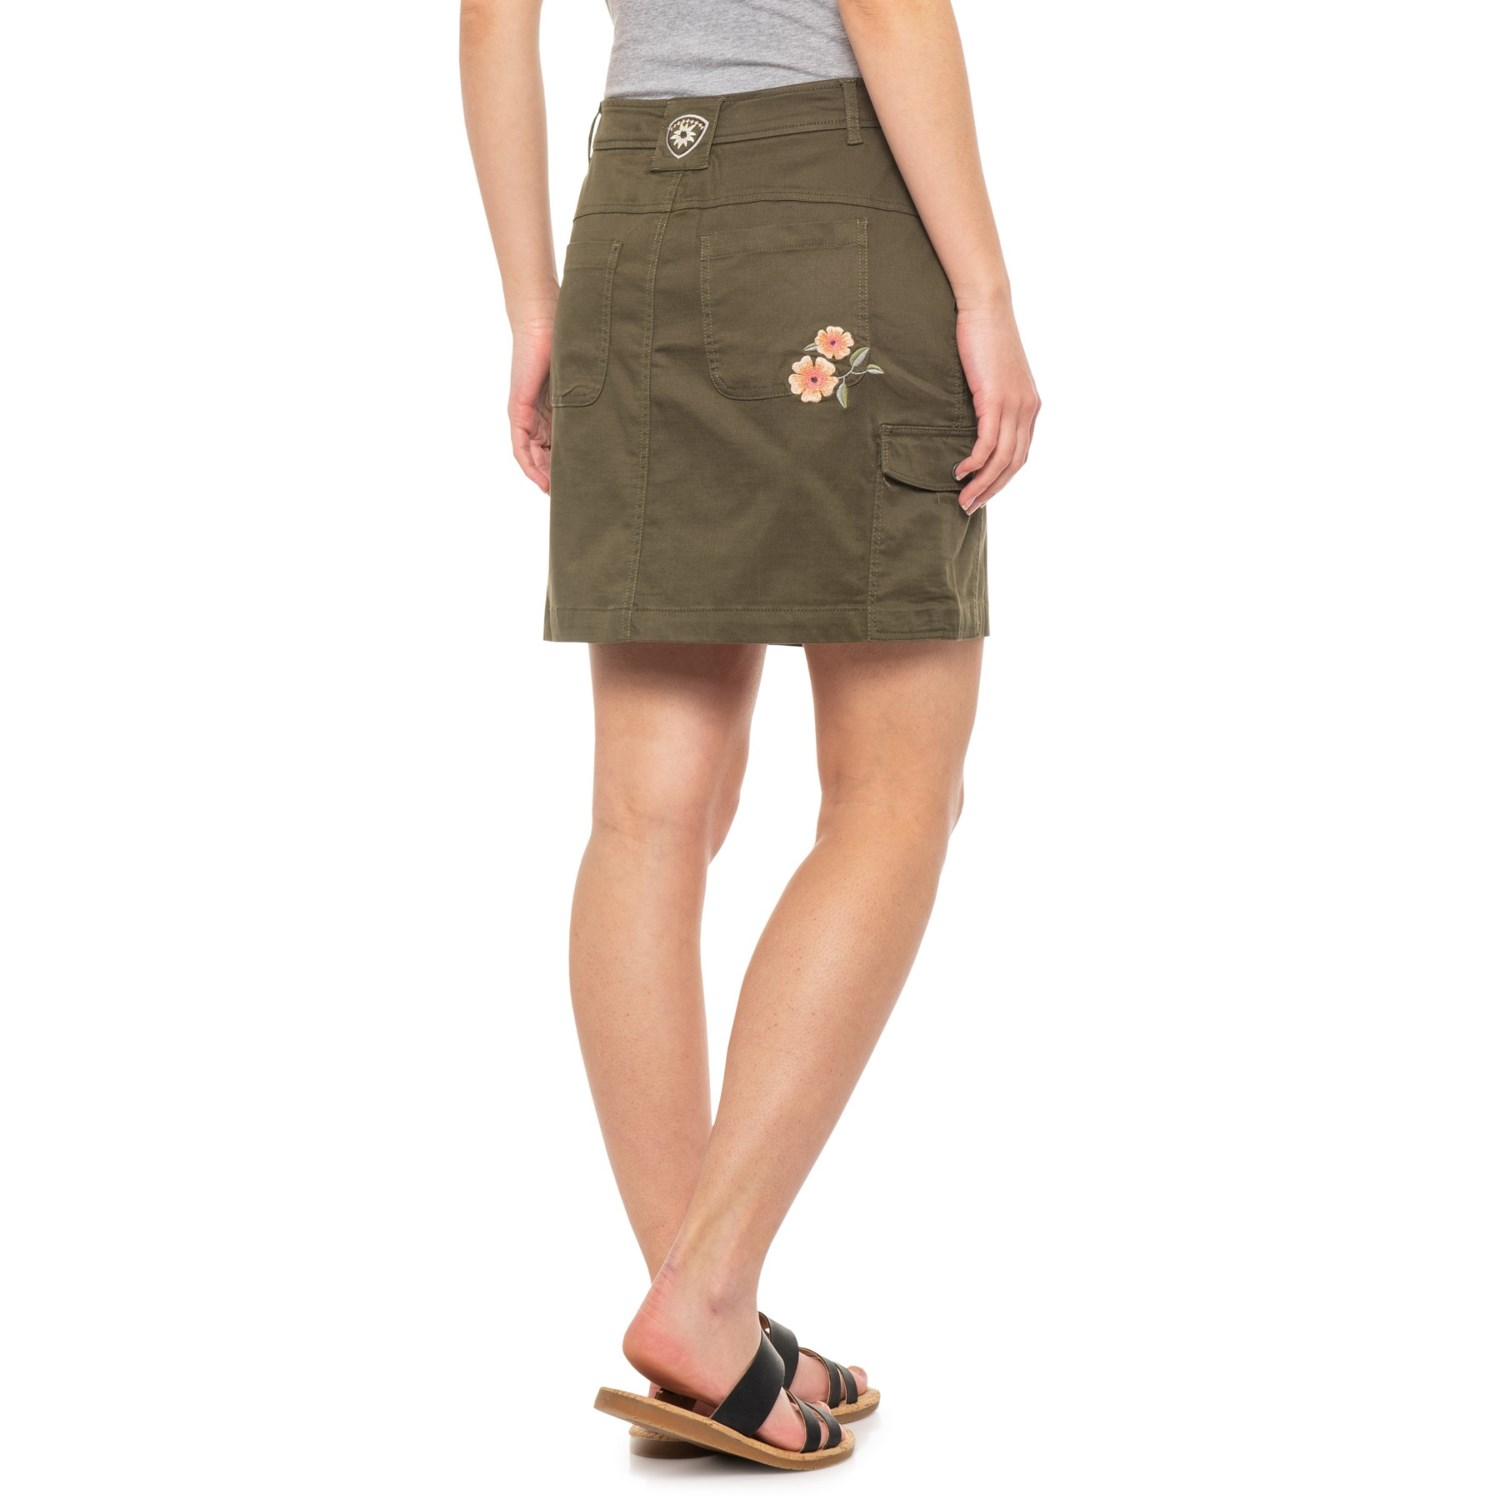 new style 3775c 87bc6 Alp-n-Rock Amelie Embroidered Cargo Skort (For Women)